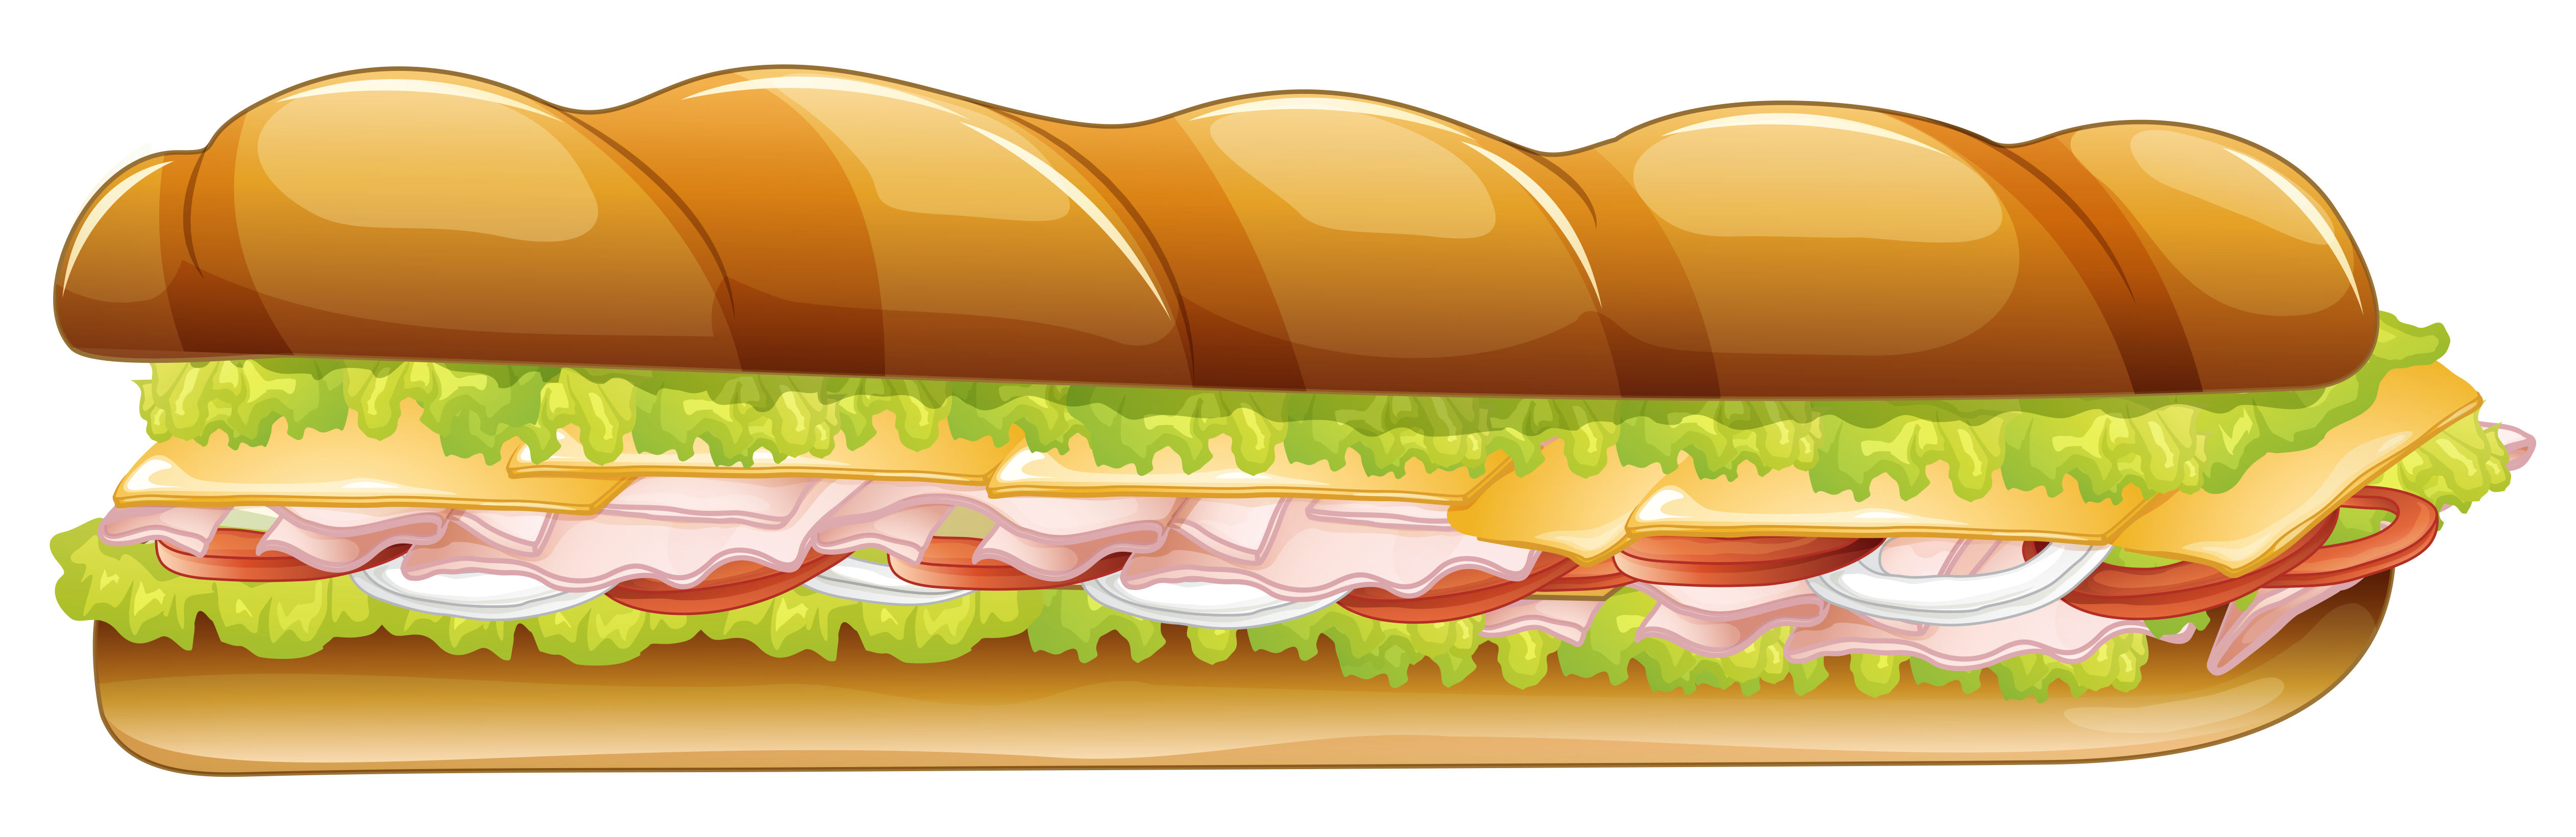 Make clipart sandwich. Long png vector image